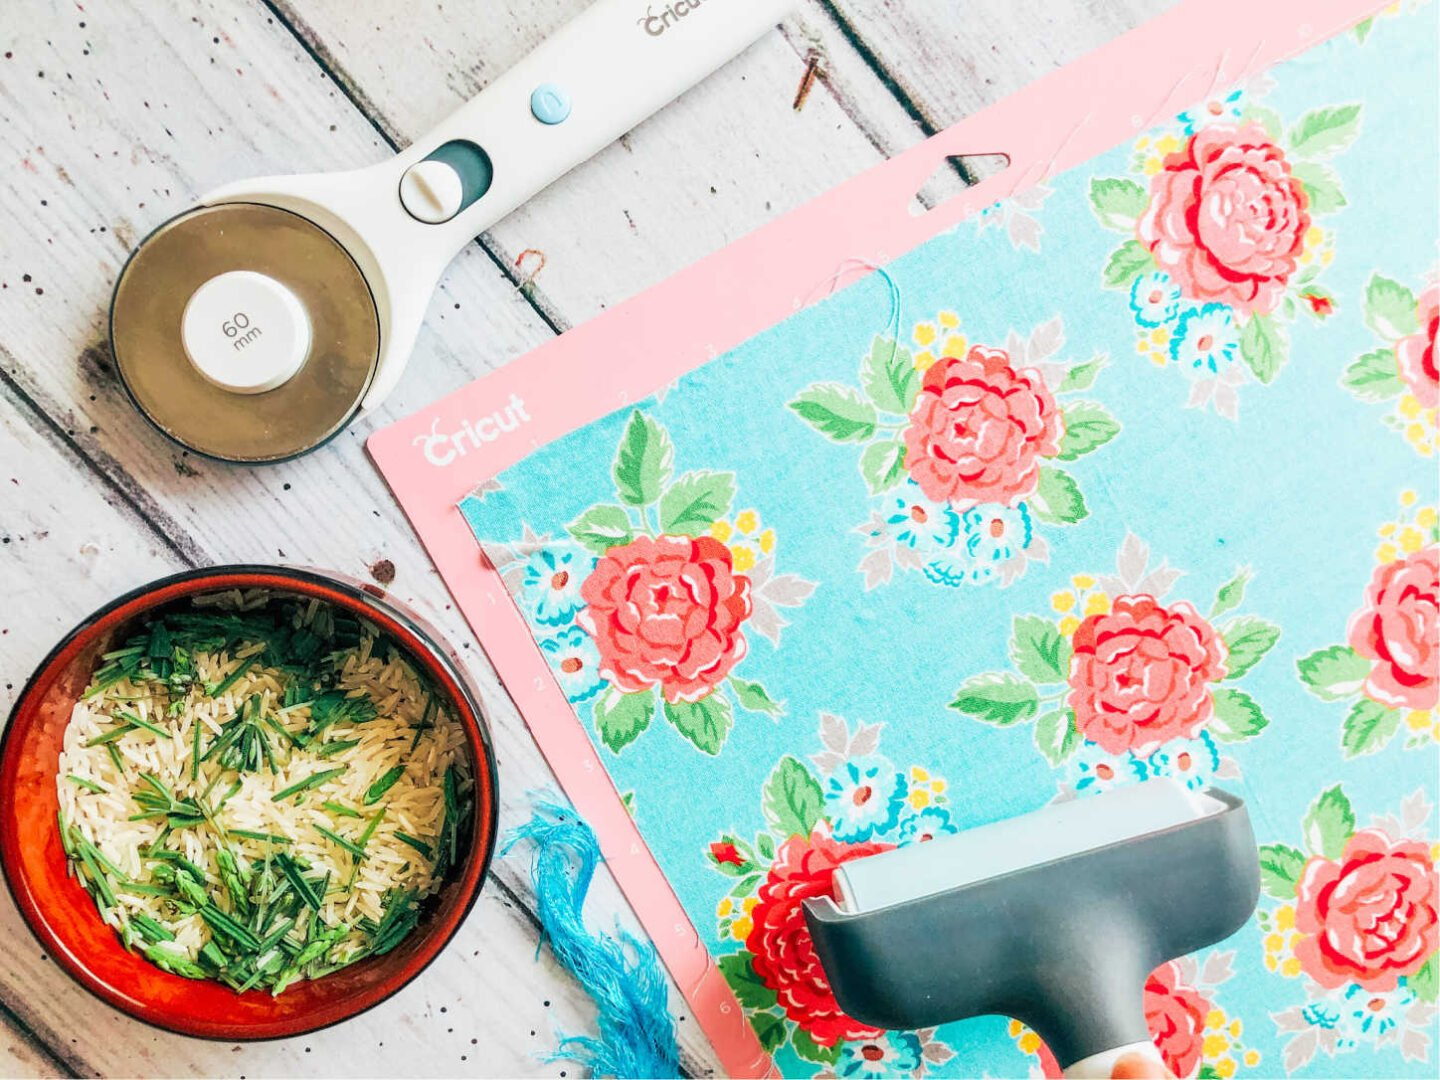 use your Cricut brayer to add the fabric to the pink cutting matt to make  homemade lavender sachets